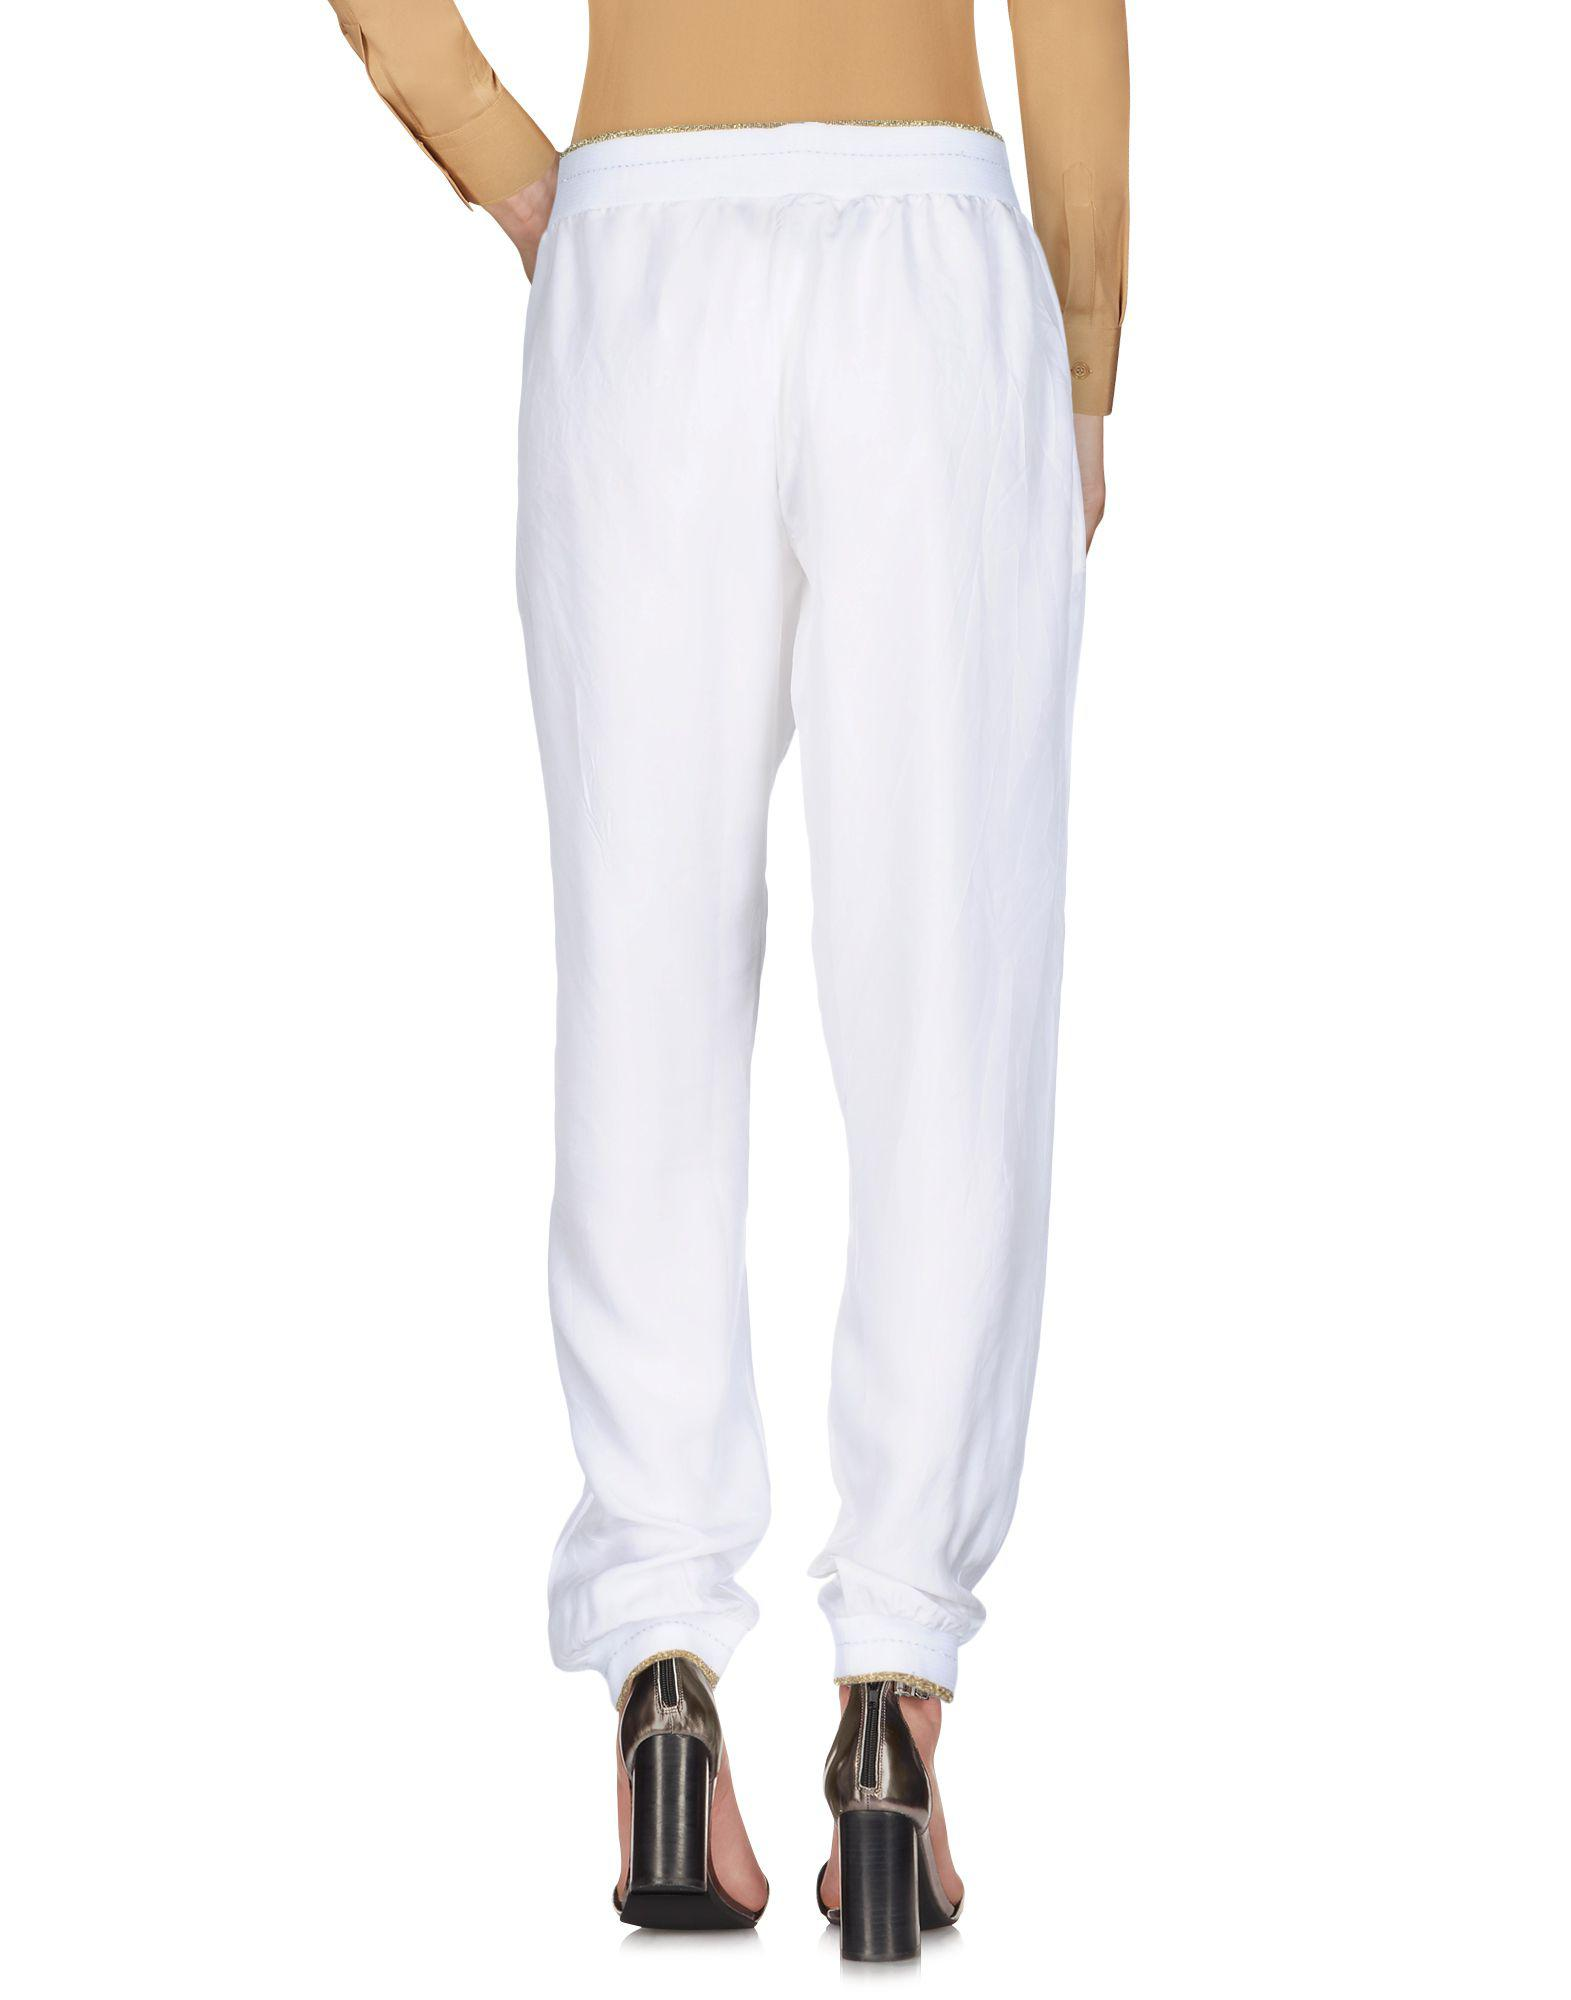 Outlet Footlocker Pictures Cheap Official Site TROUSERS - Casual trousers Gai Mattiolo YdjuvKdn